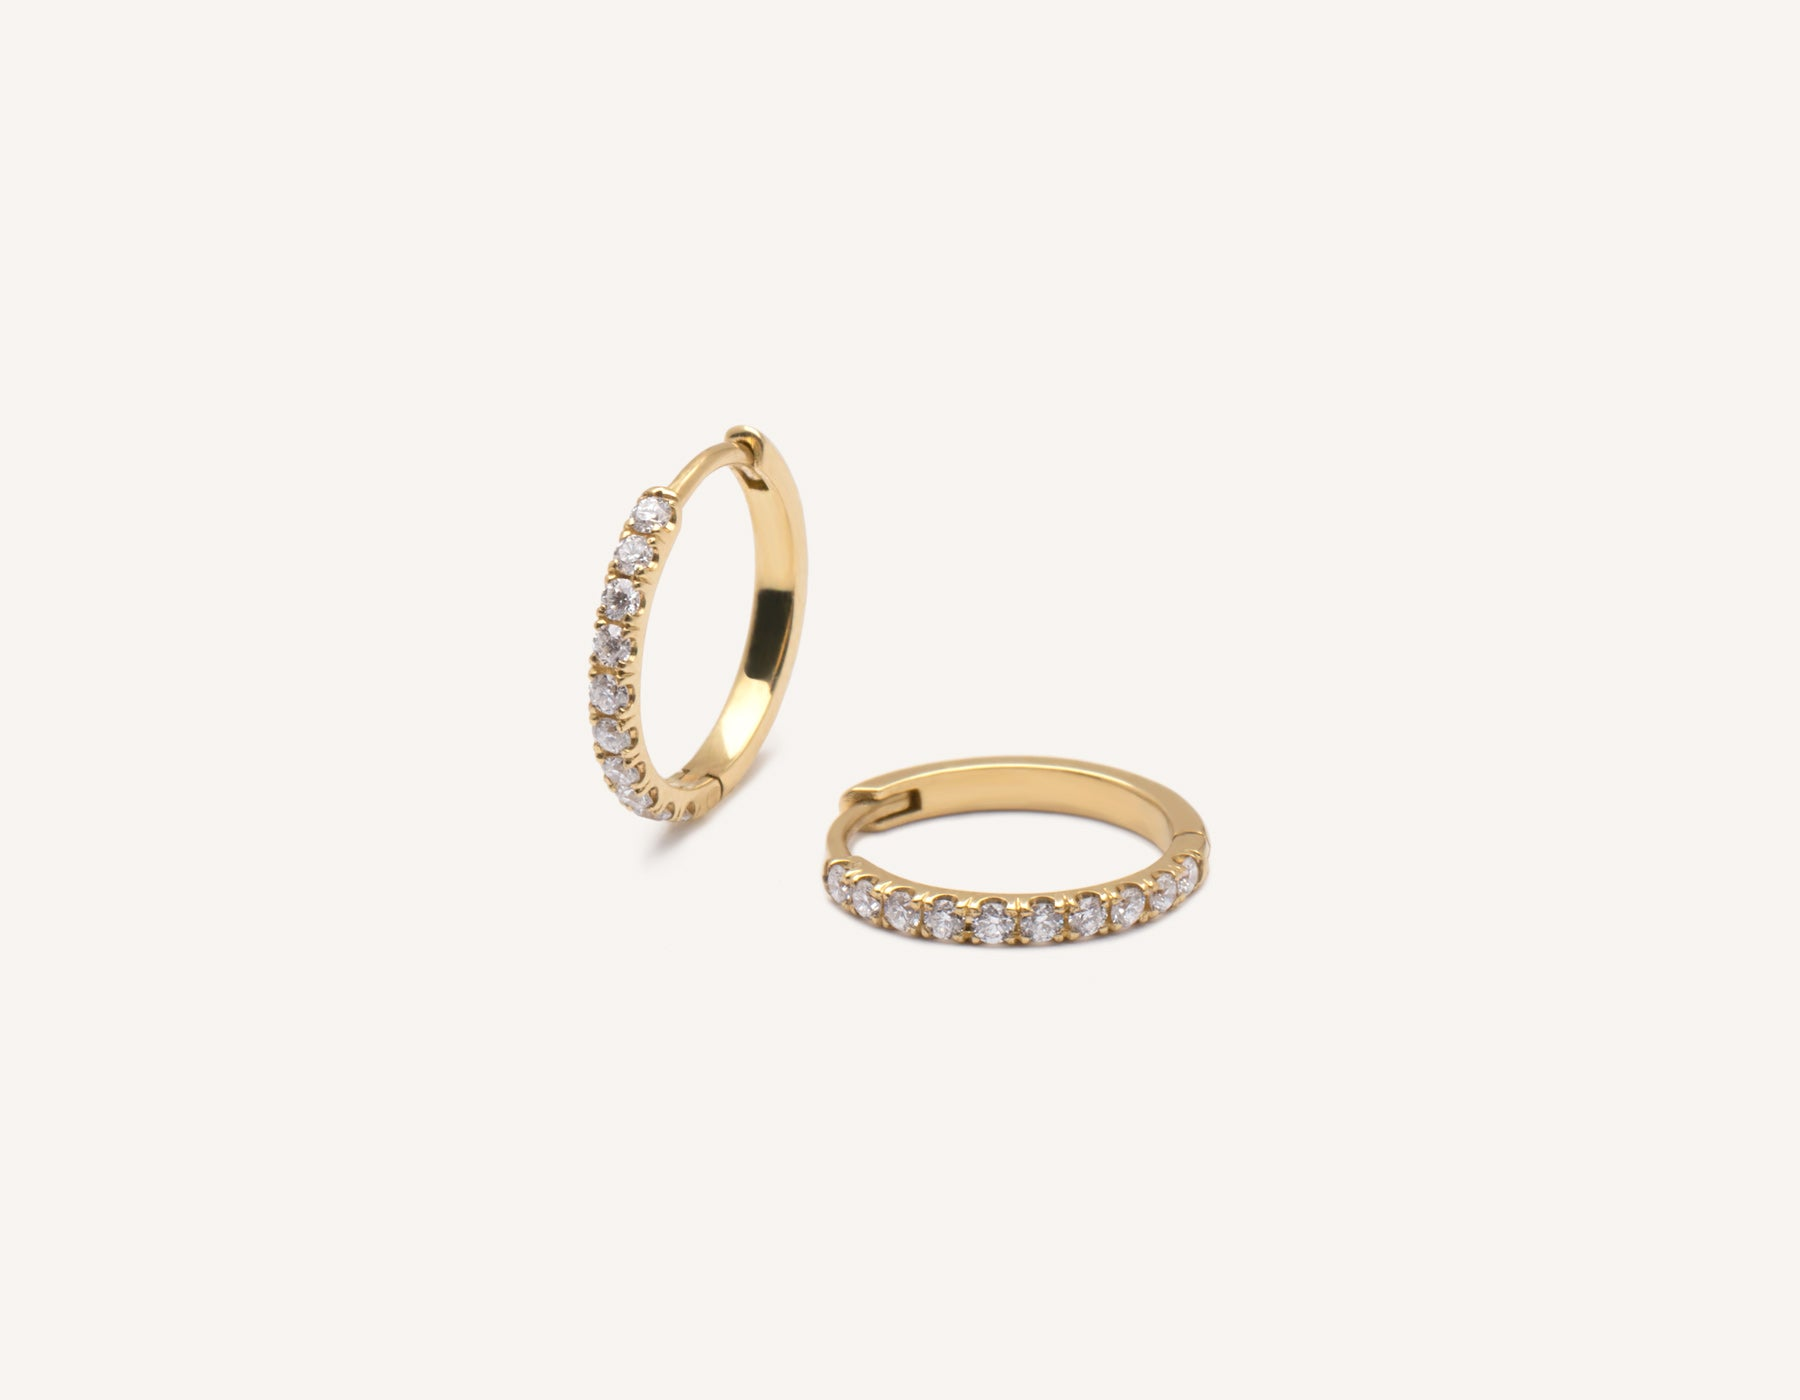 b7519dade Simple classic 14k solid gold Medium Pave Diamond Huggie Hoops Earrings  Vrai and Oro, 14K